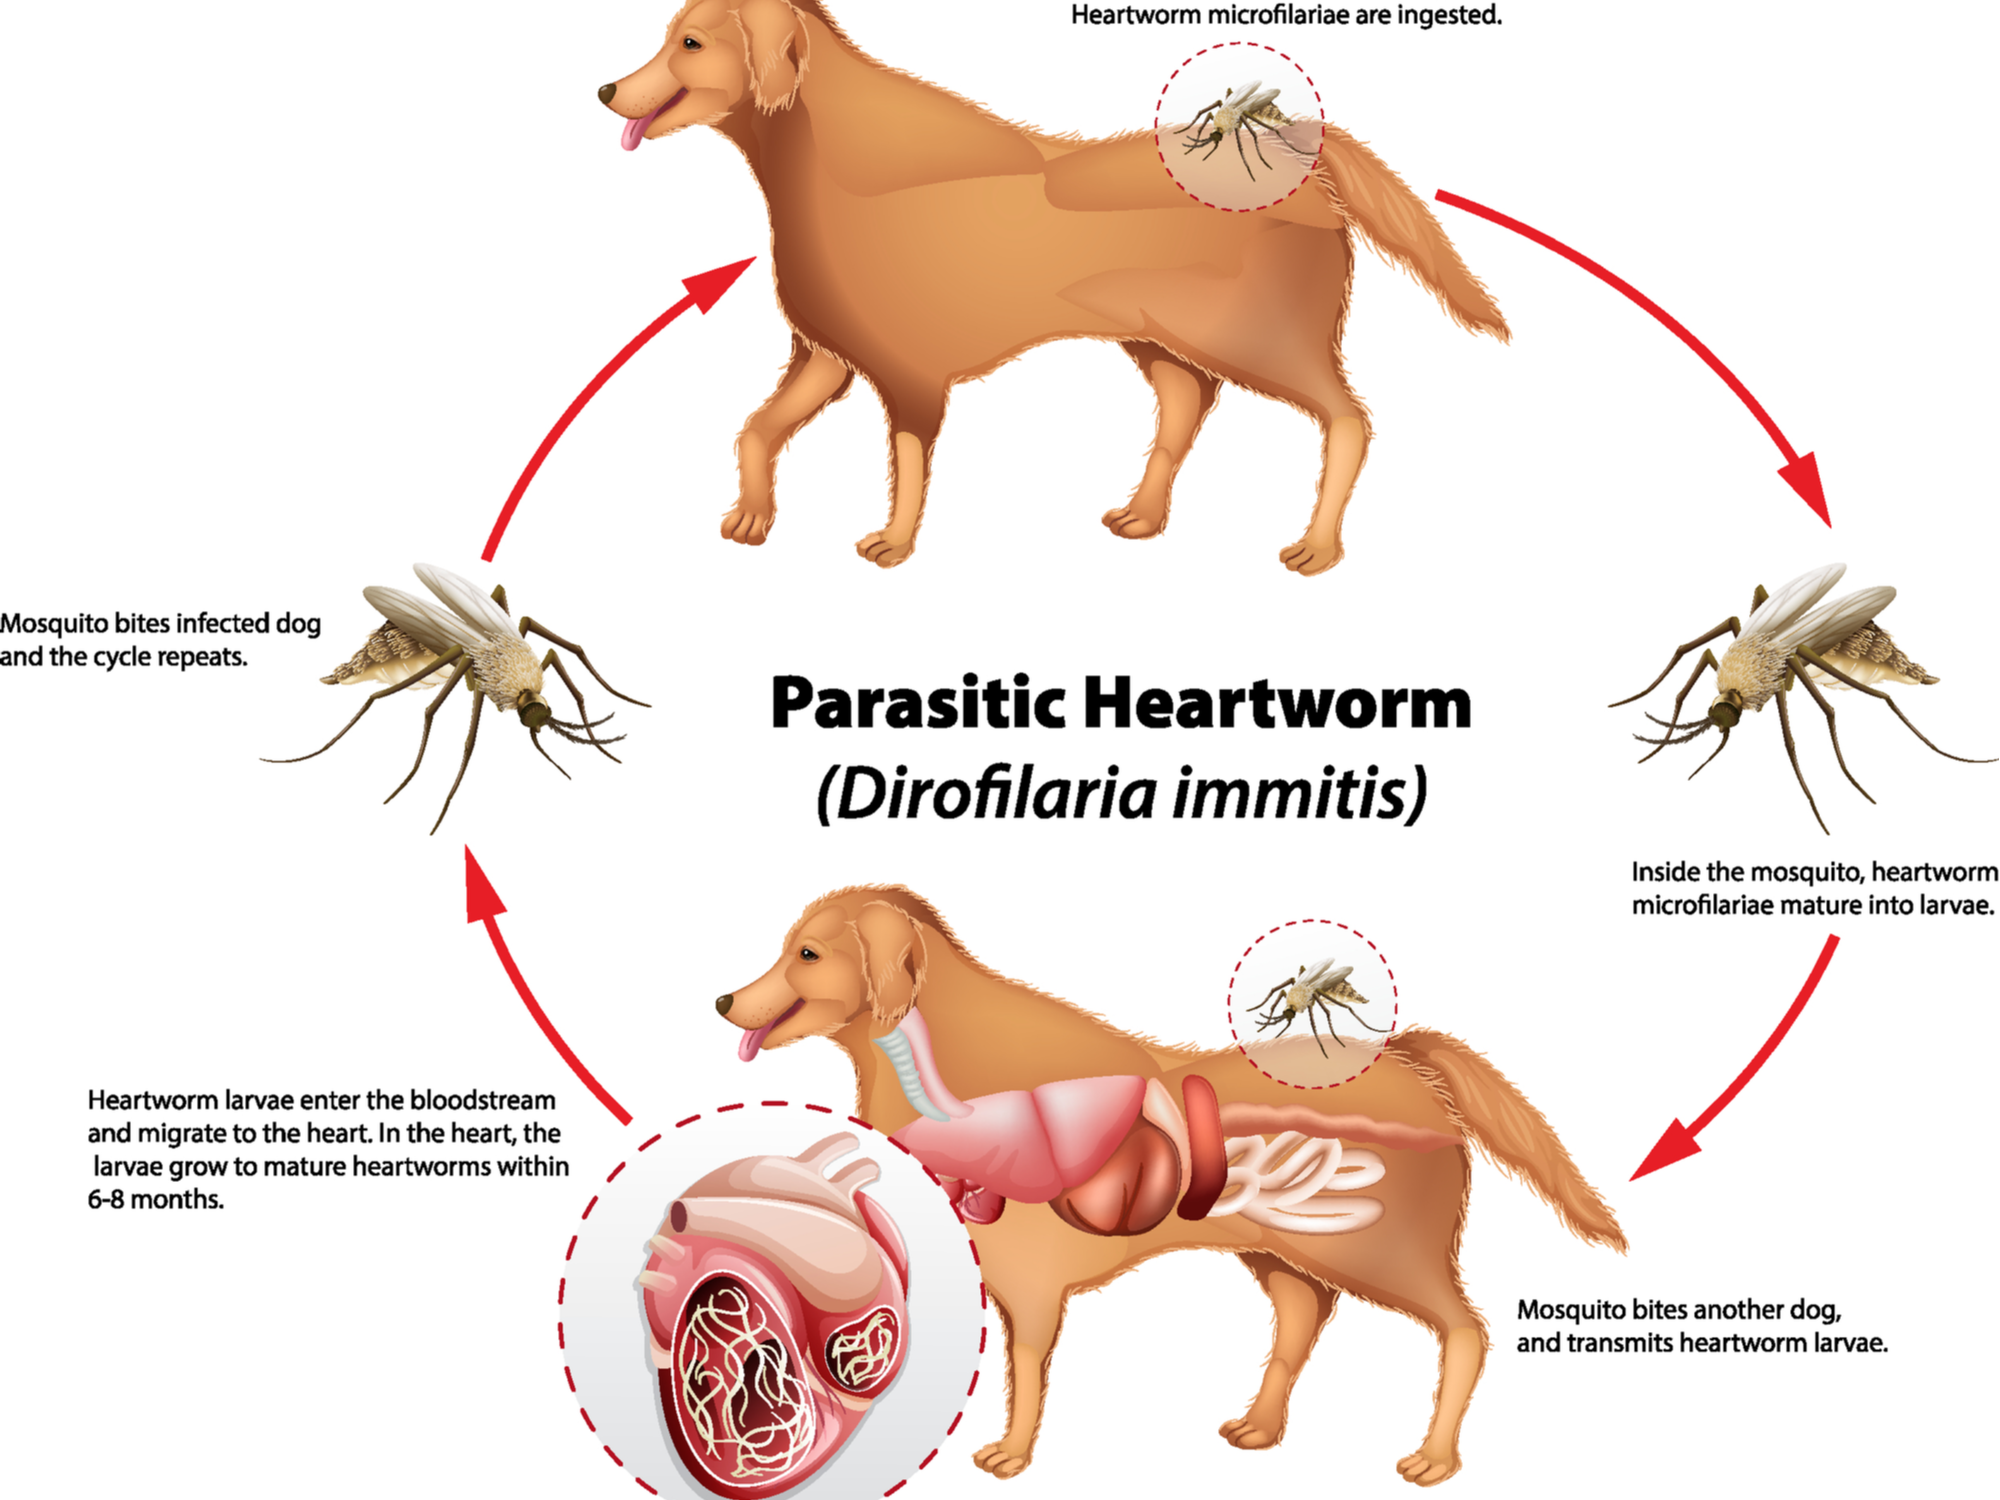 Signs and Symptoms of Heartworm Disease